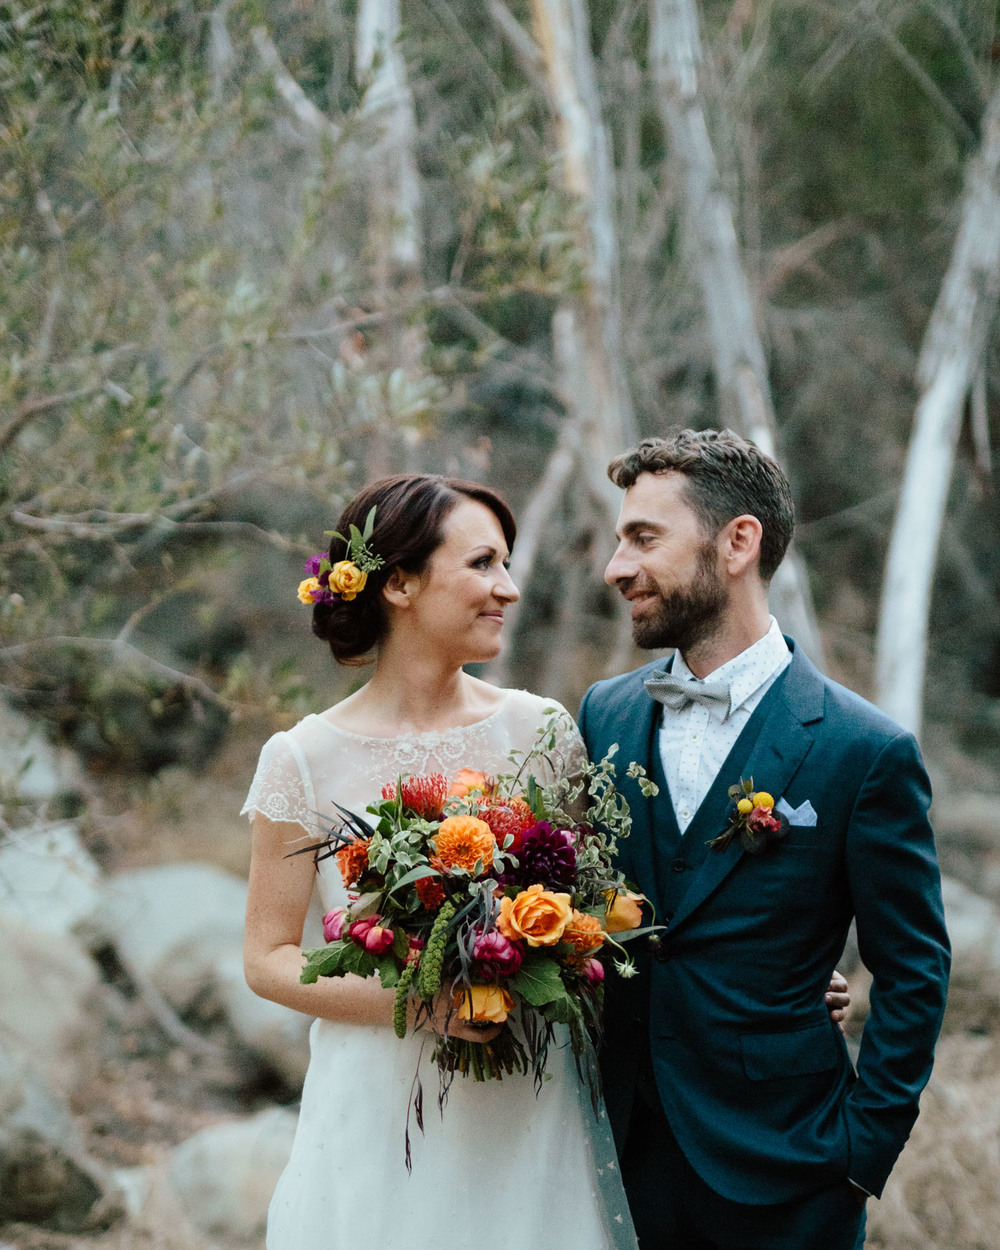 Ojai Wedding Photographer, Calliote Canyon Wedding - The Gathering Season x weareleoandkat 070.JPG